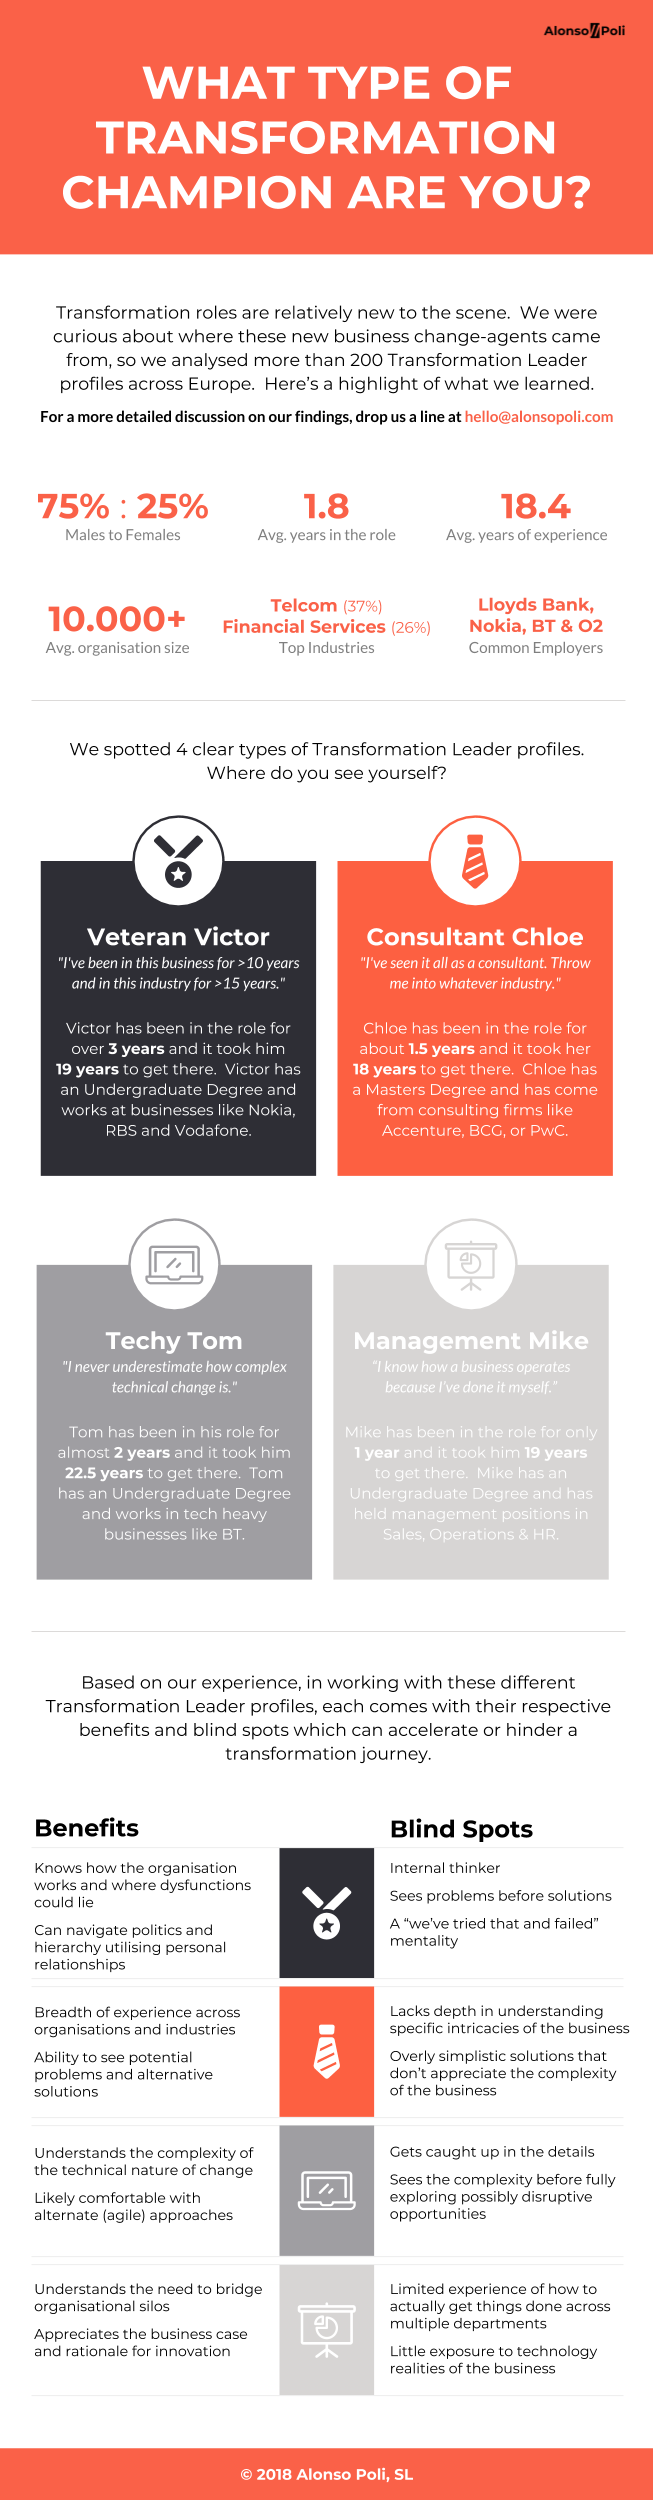 Transformation-Champions-Infographic-Alonso-Poli.png